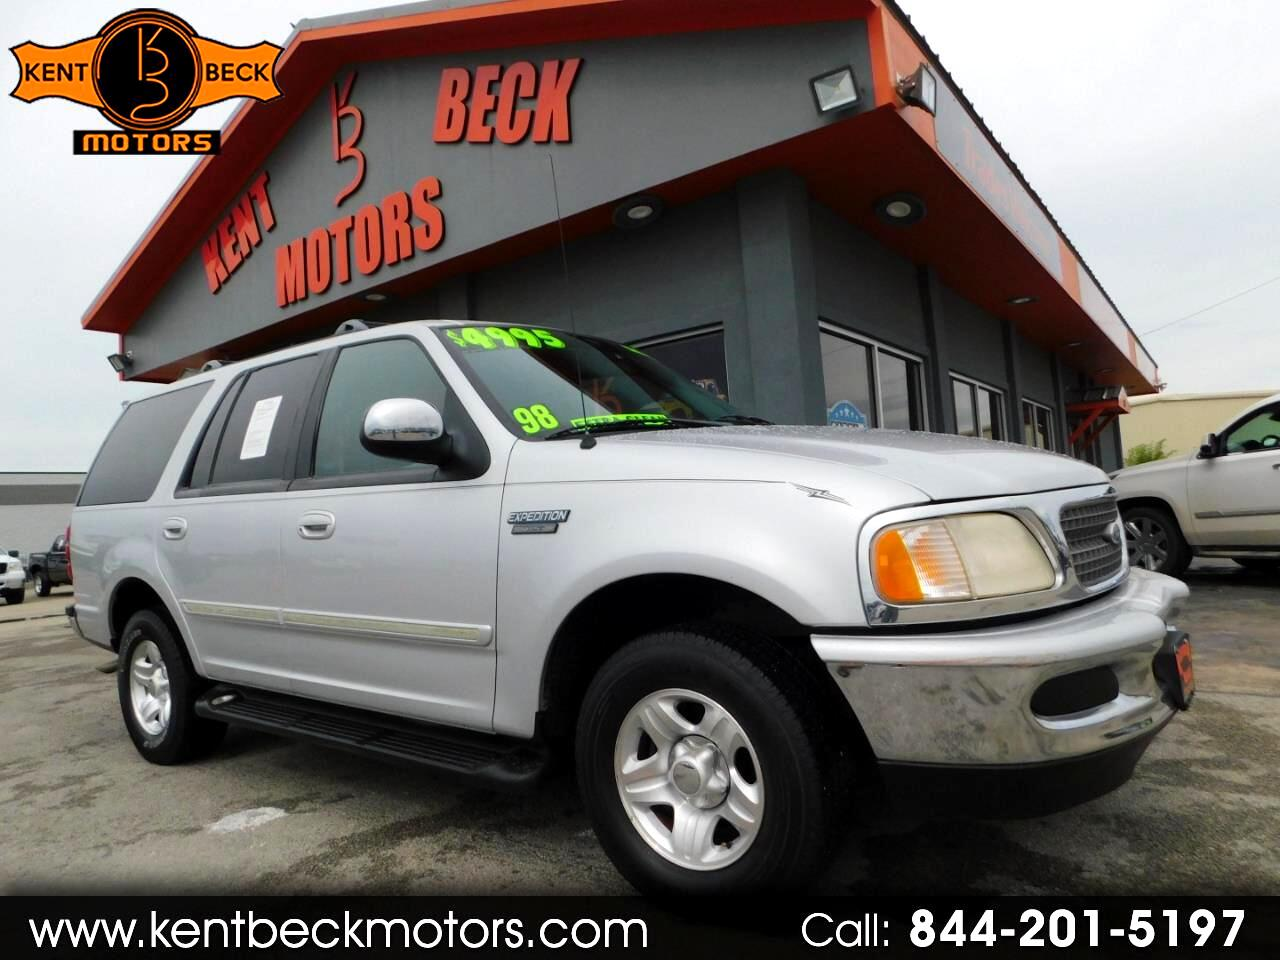 1998 Ford Expedition XLT 2WD